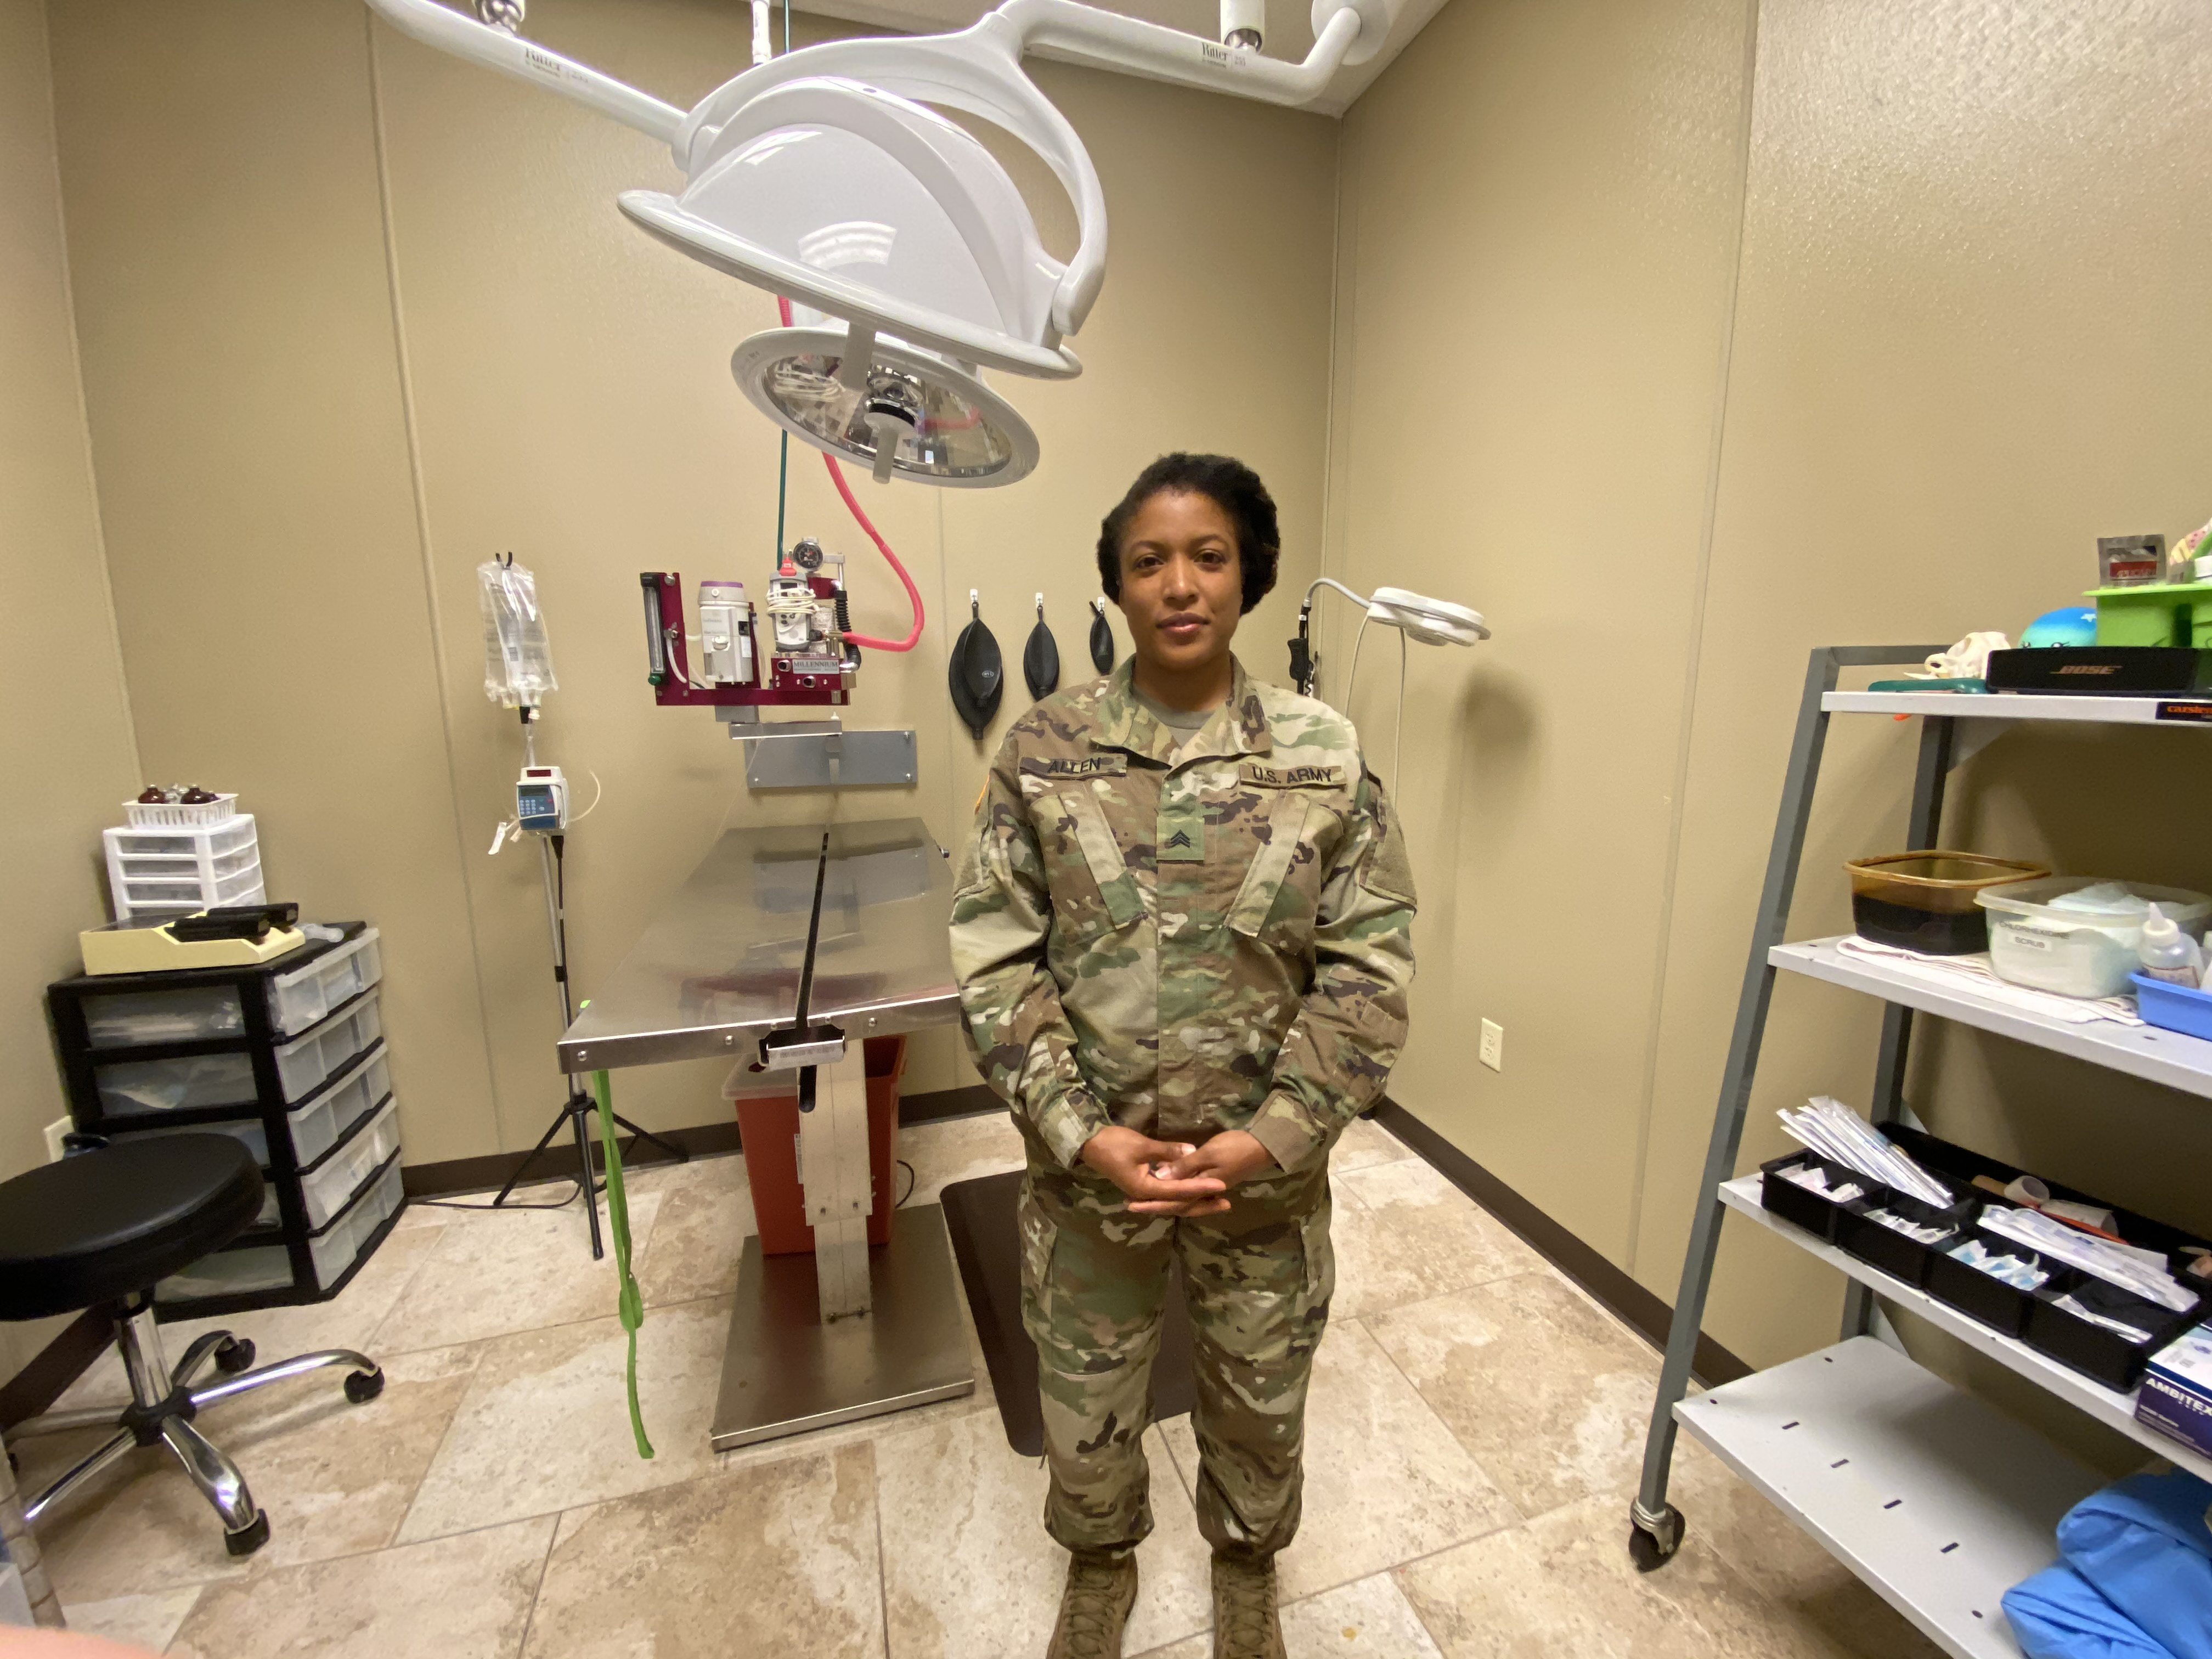 Sgt. Priscilla Allen, a former FCNMHP team member, at our